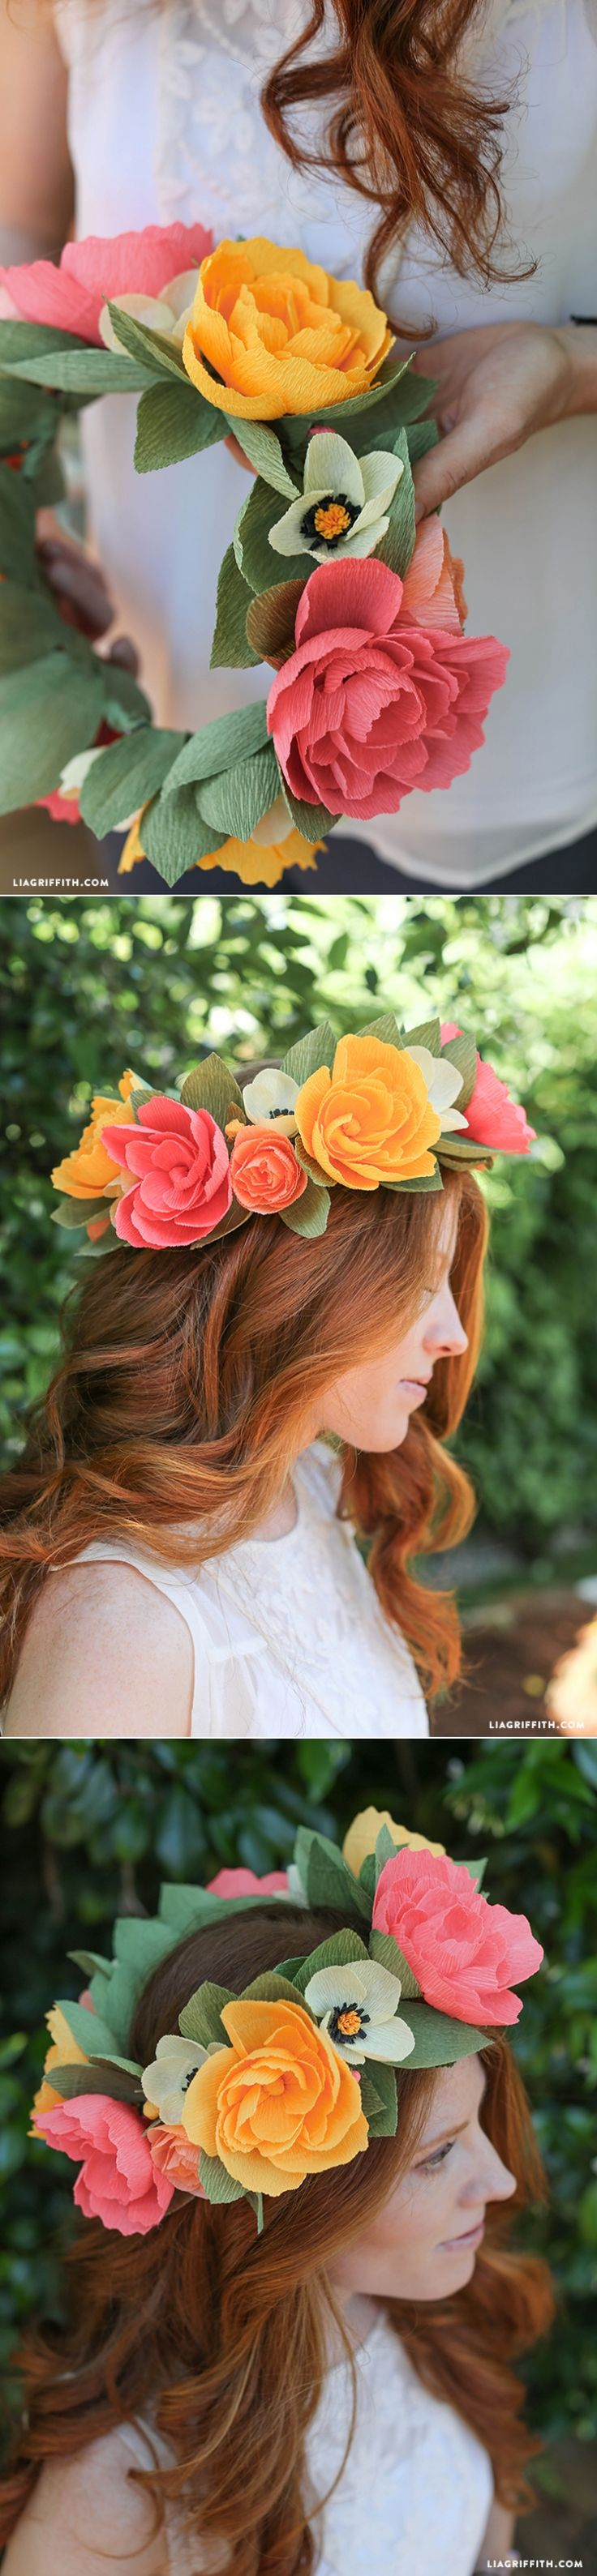 Maybe just one big one. Crepe Paper Flower Headband with peonies, roses, and poppies